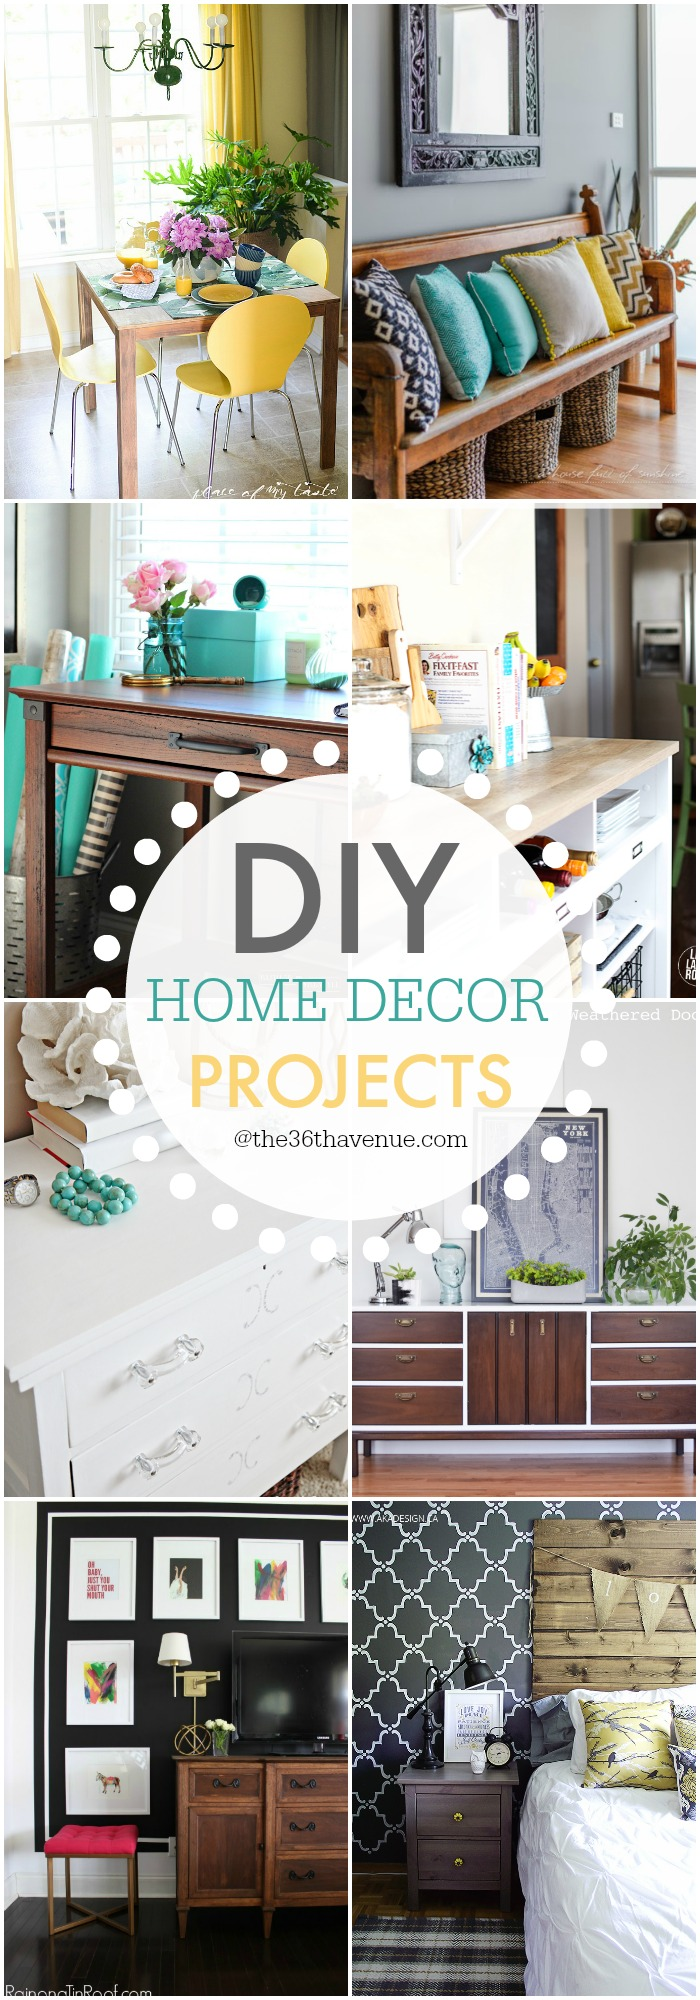 The 36th avenue diy home decor projects and ideas the 36th avenue Ideas to decorate your house